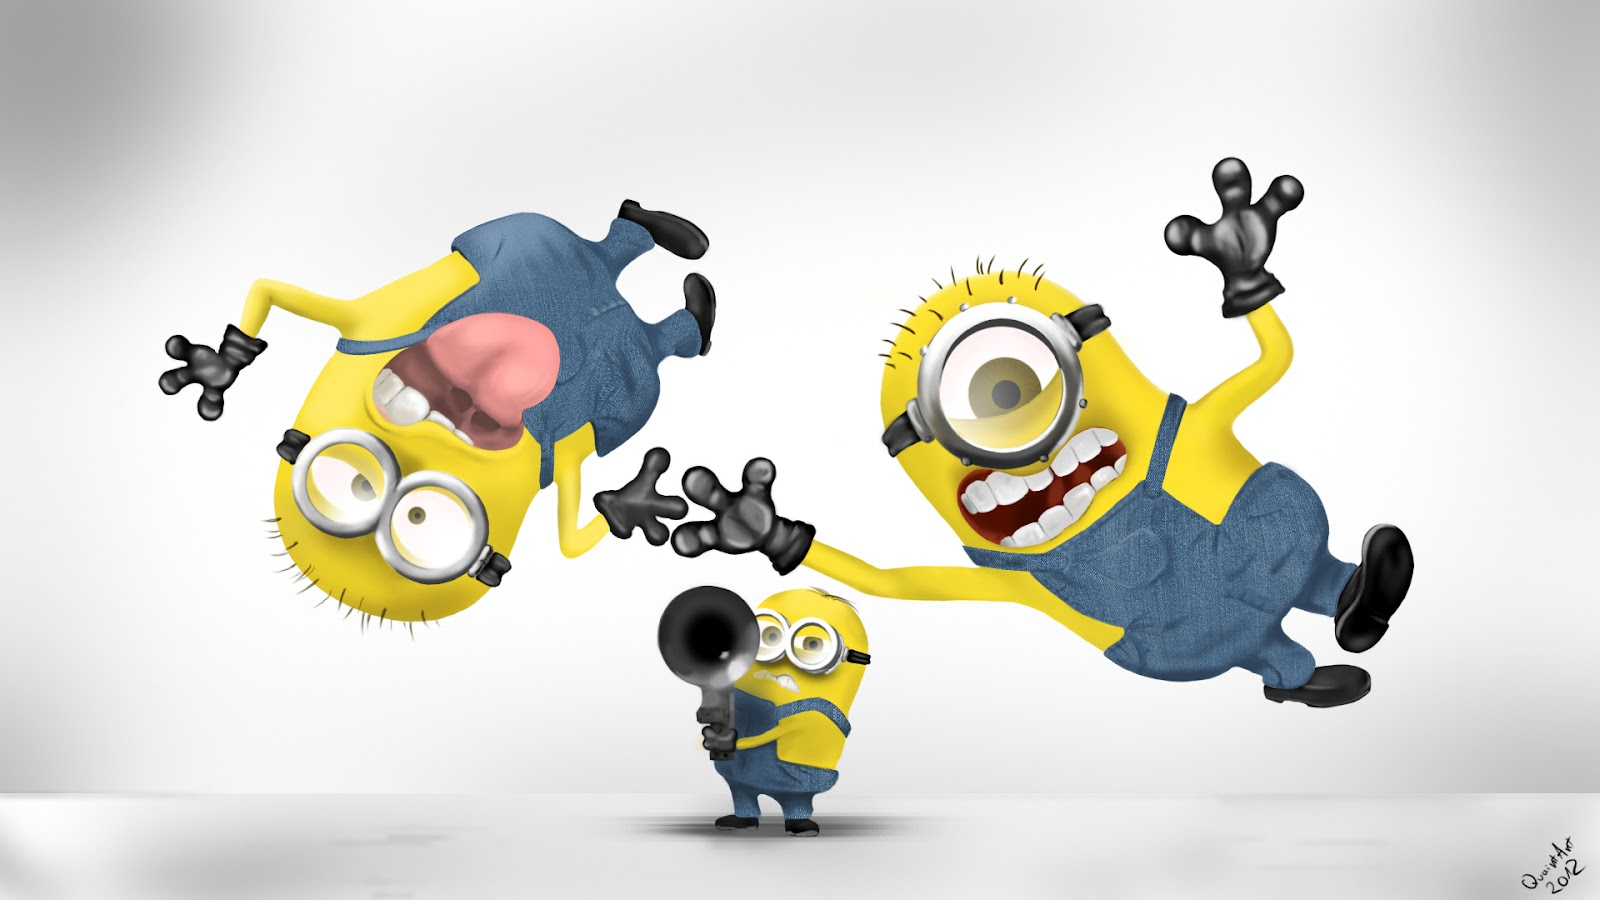 Despicable Me Wallpapers in HD -1080p | Wallpaper Store for Desktop